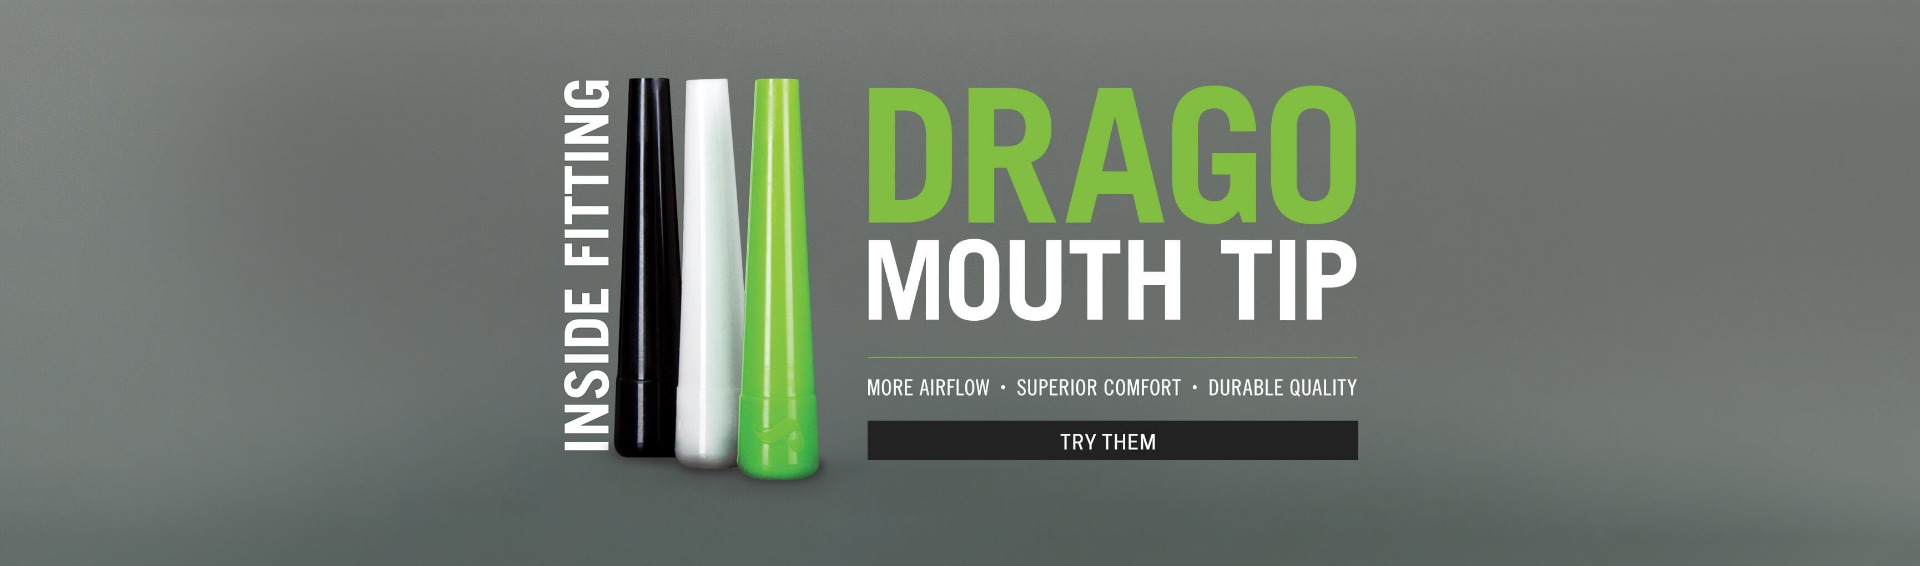 Drago Mouth Tips